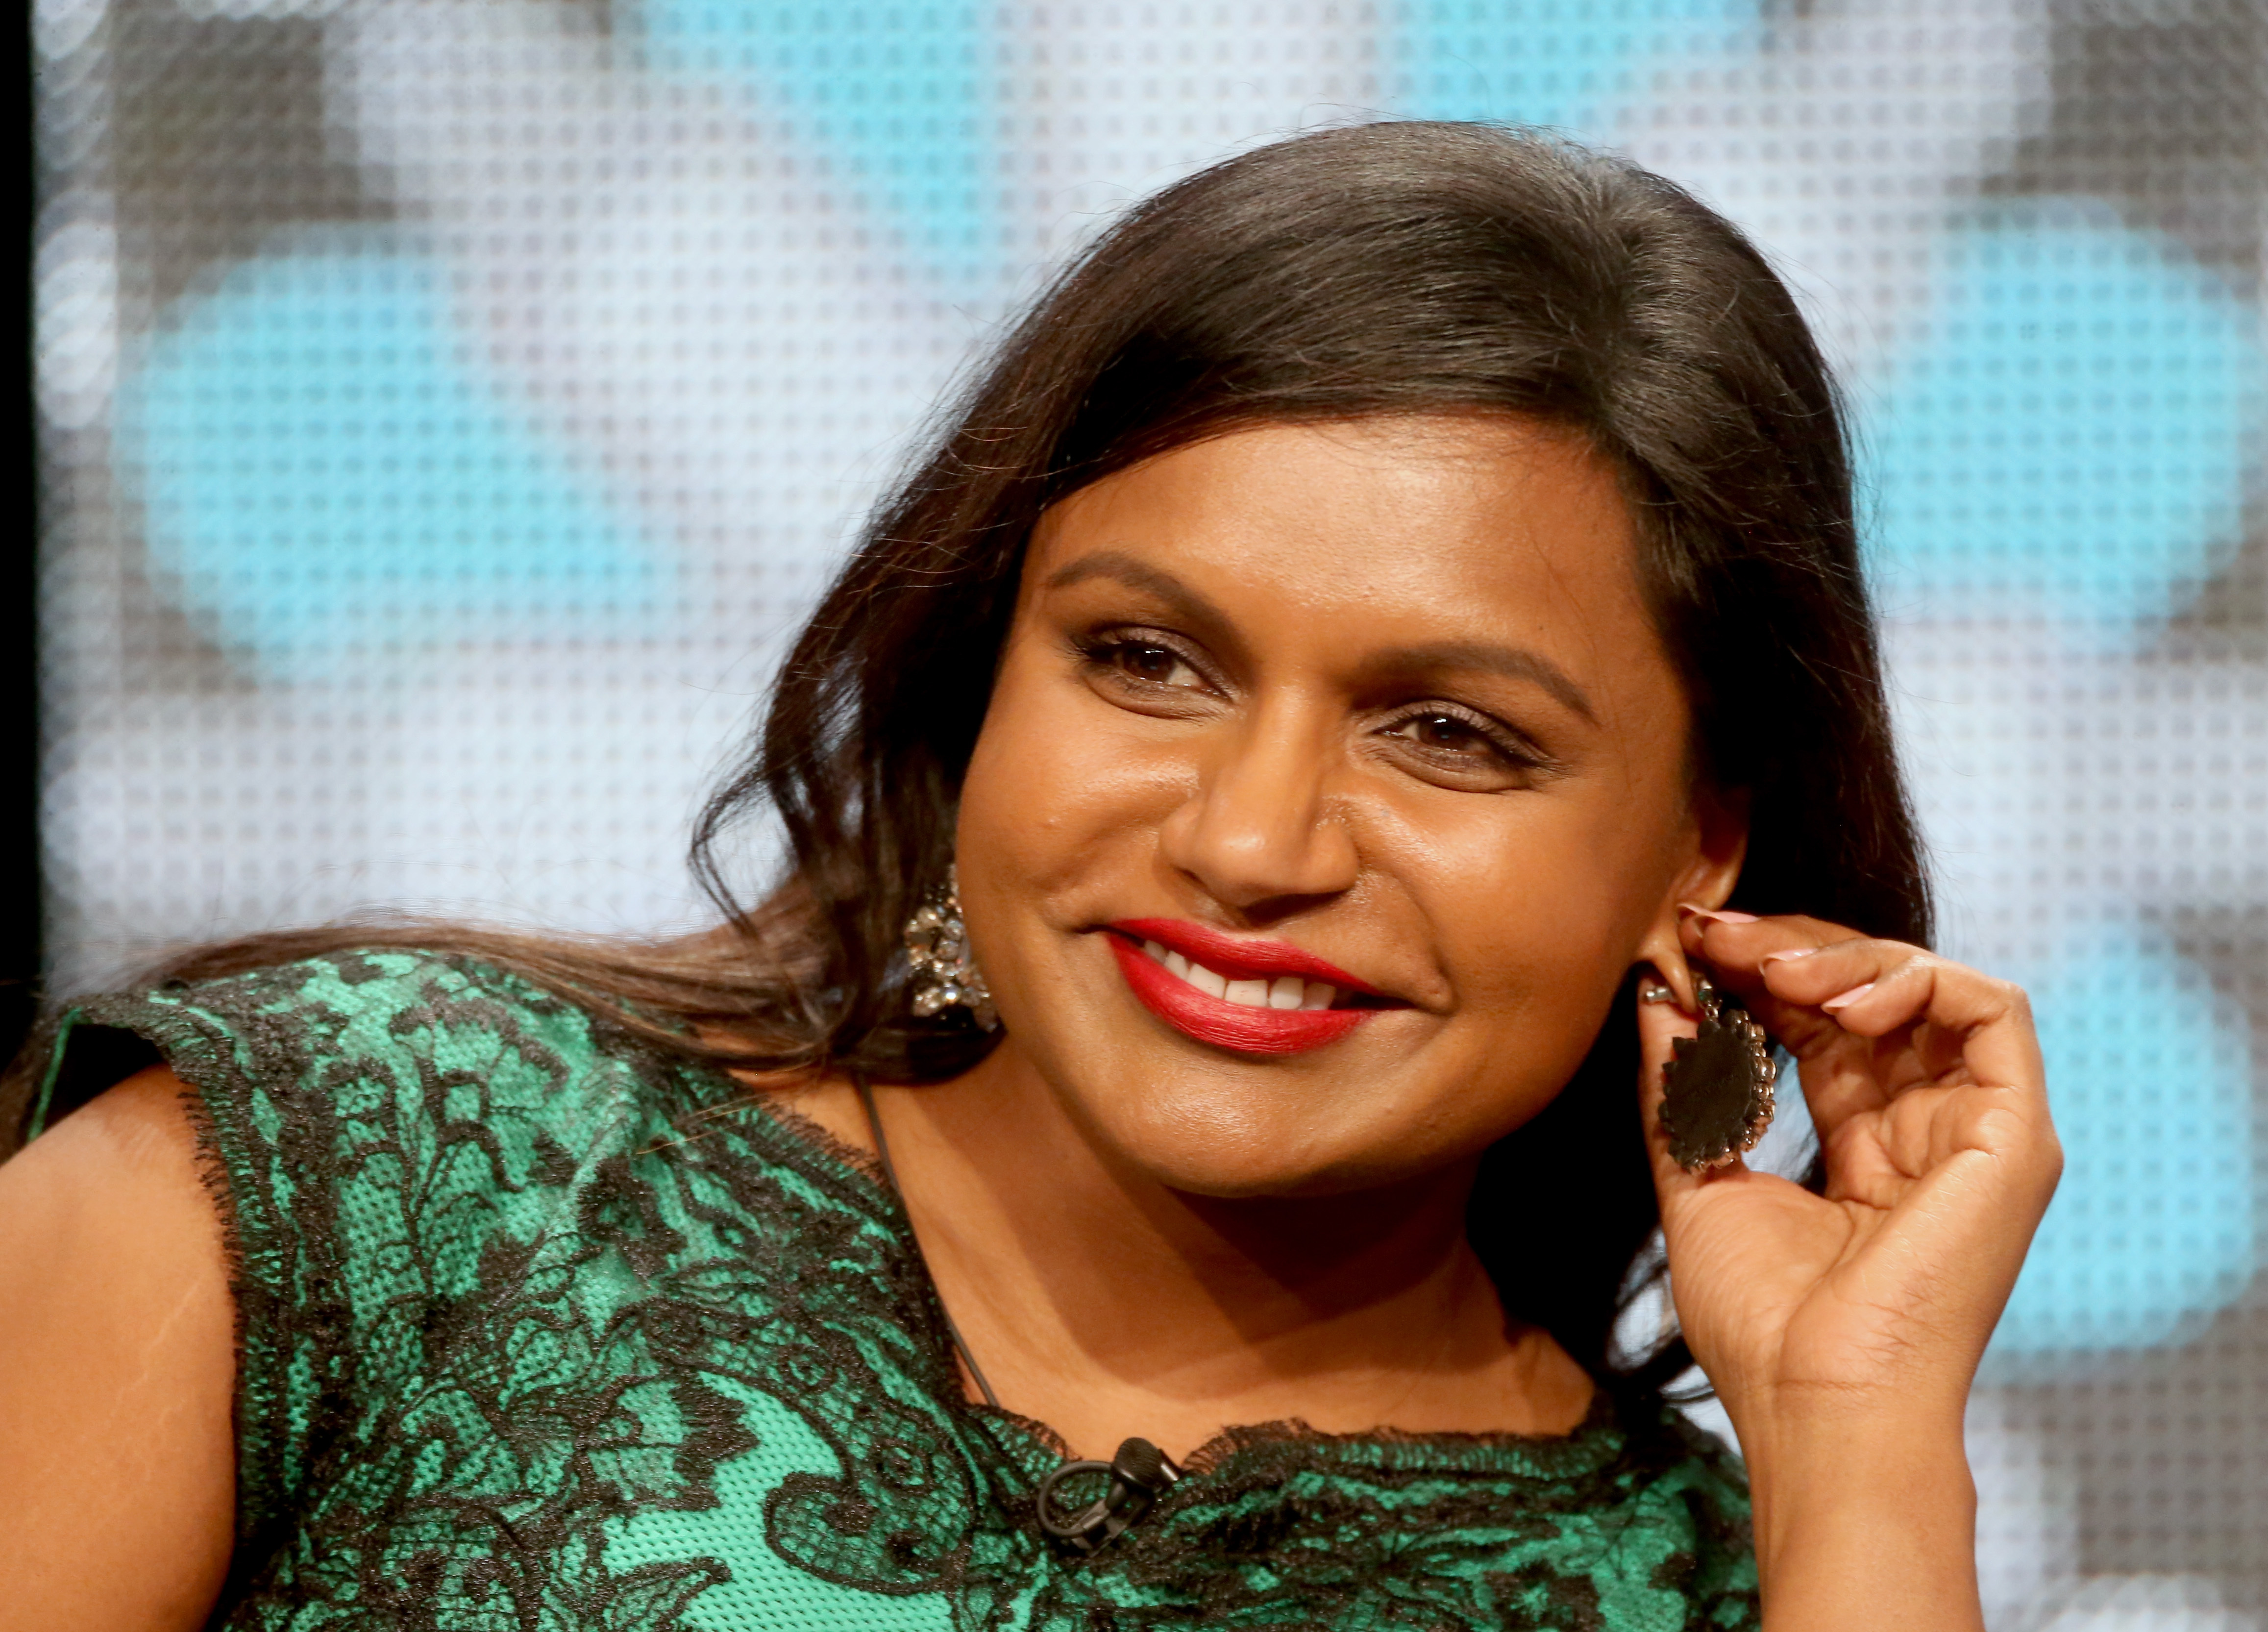 Mindy Kaling Wallpapers Images Photos Pictures Backgrounds 4628x3330